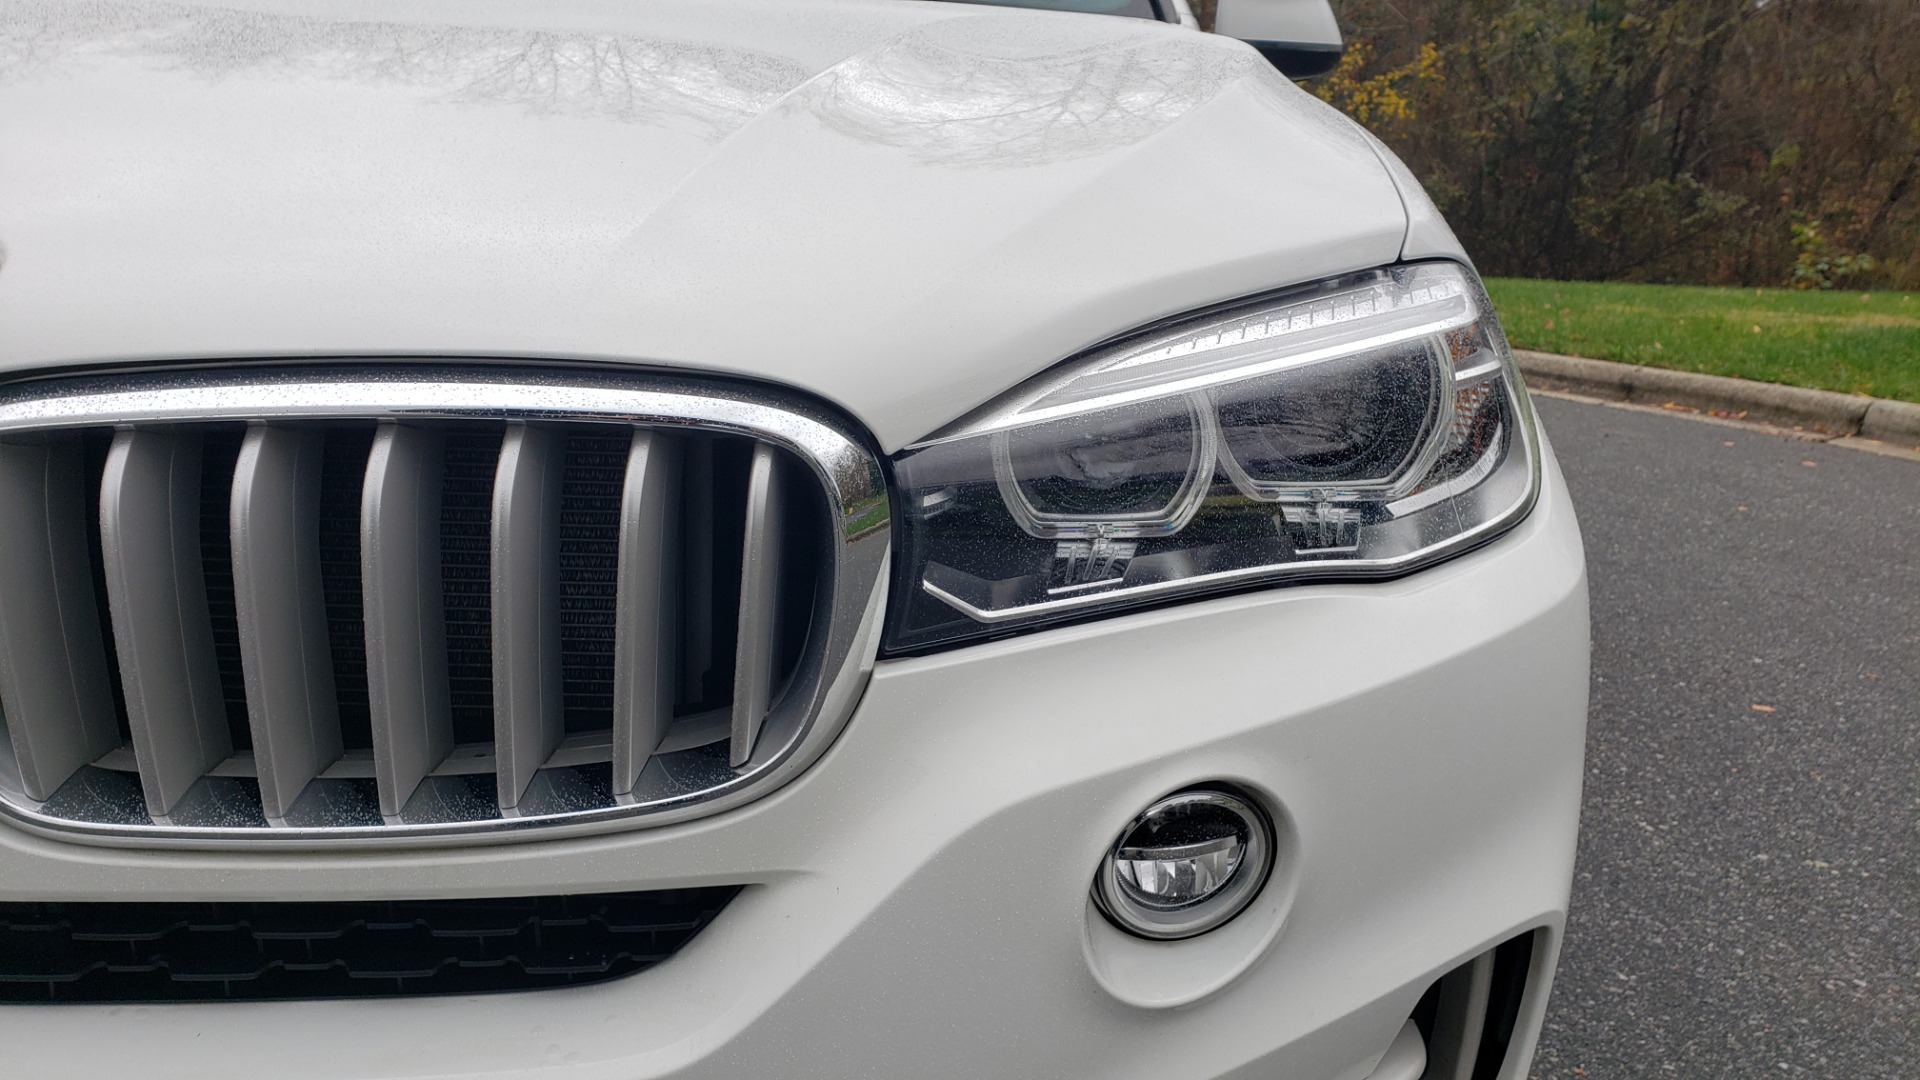 Used 2018 BMW X5 XDRIVE35I / AWD / NAV / HTD STS / SUNROOF / REARVIEW for sale Sold at Formula Imports in Charlotte NC 28227 21